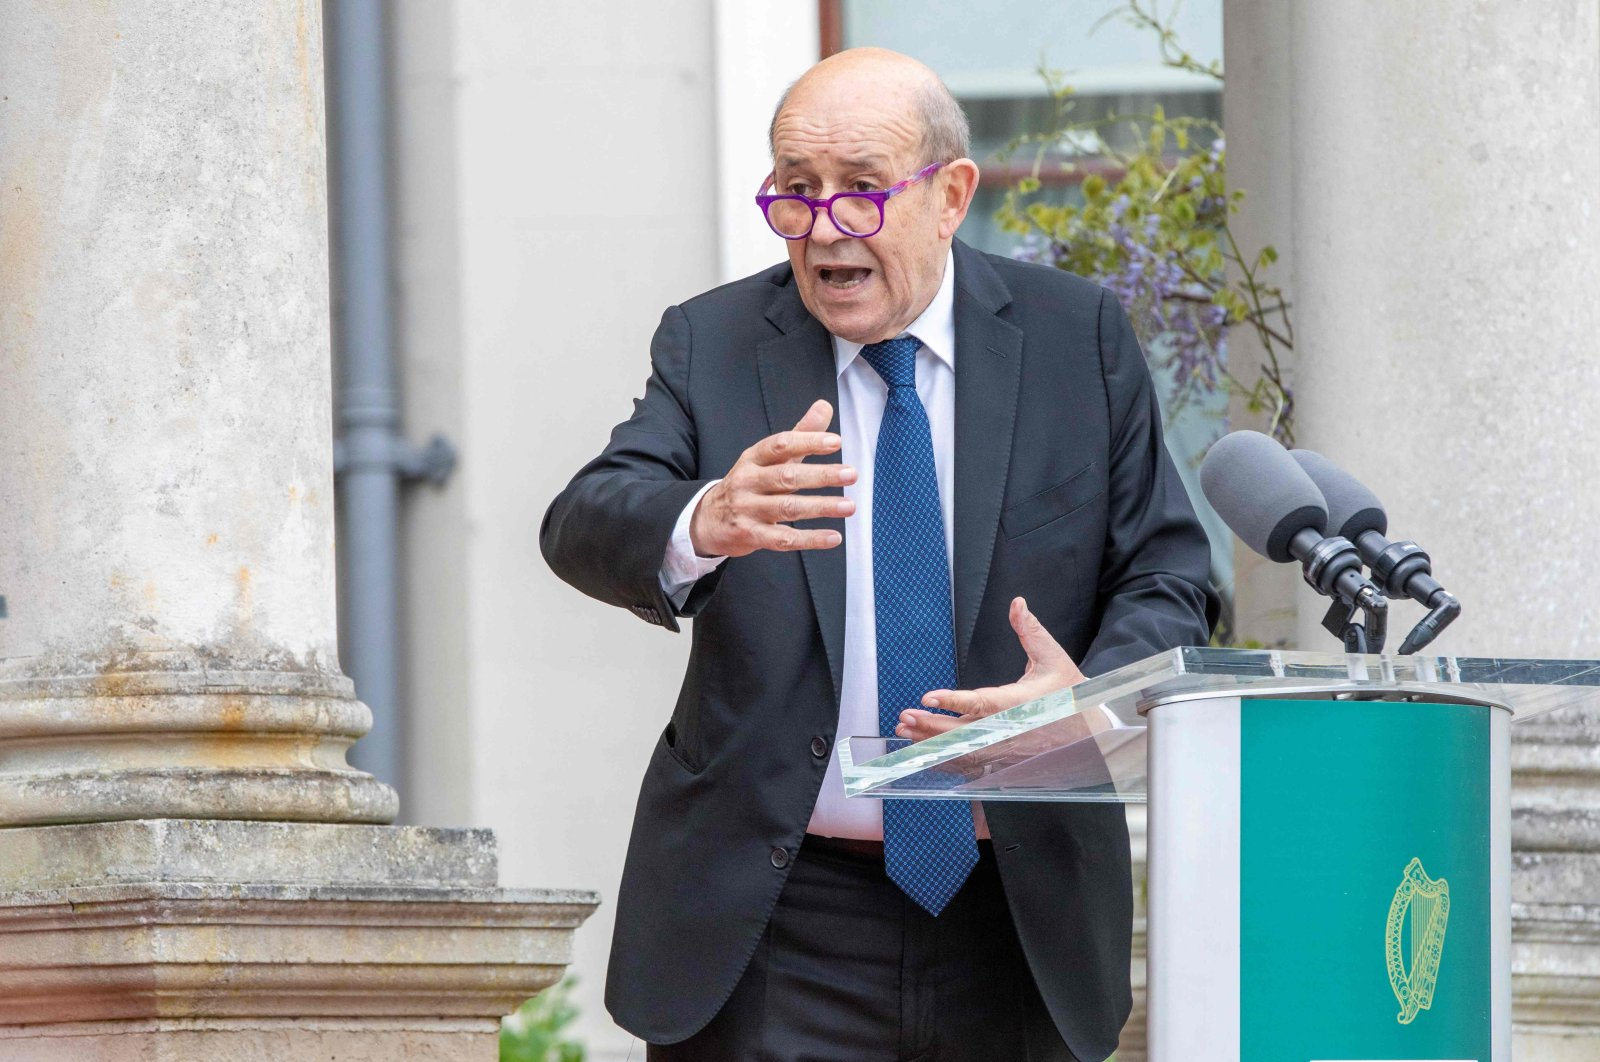 French Minister for Foreign Affairs Jean-Yves Le Drian speaks during a joint news conference with Irish Minister for Foreign Affairs Simon Coveney, at Farmleigh House and Estate in Dublin, Ireland, May 20, 2021. (AFP Photo)